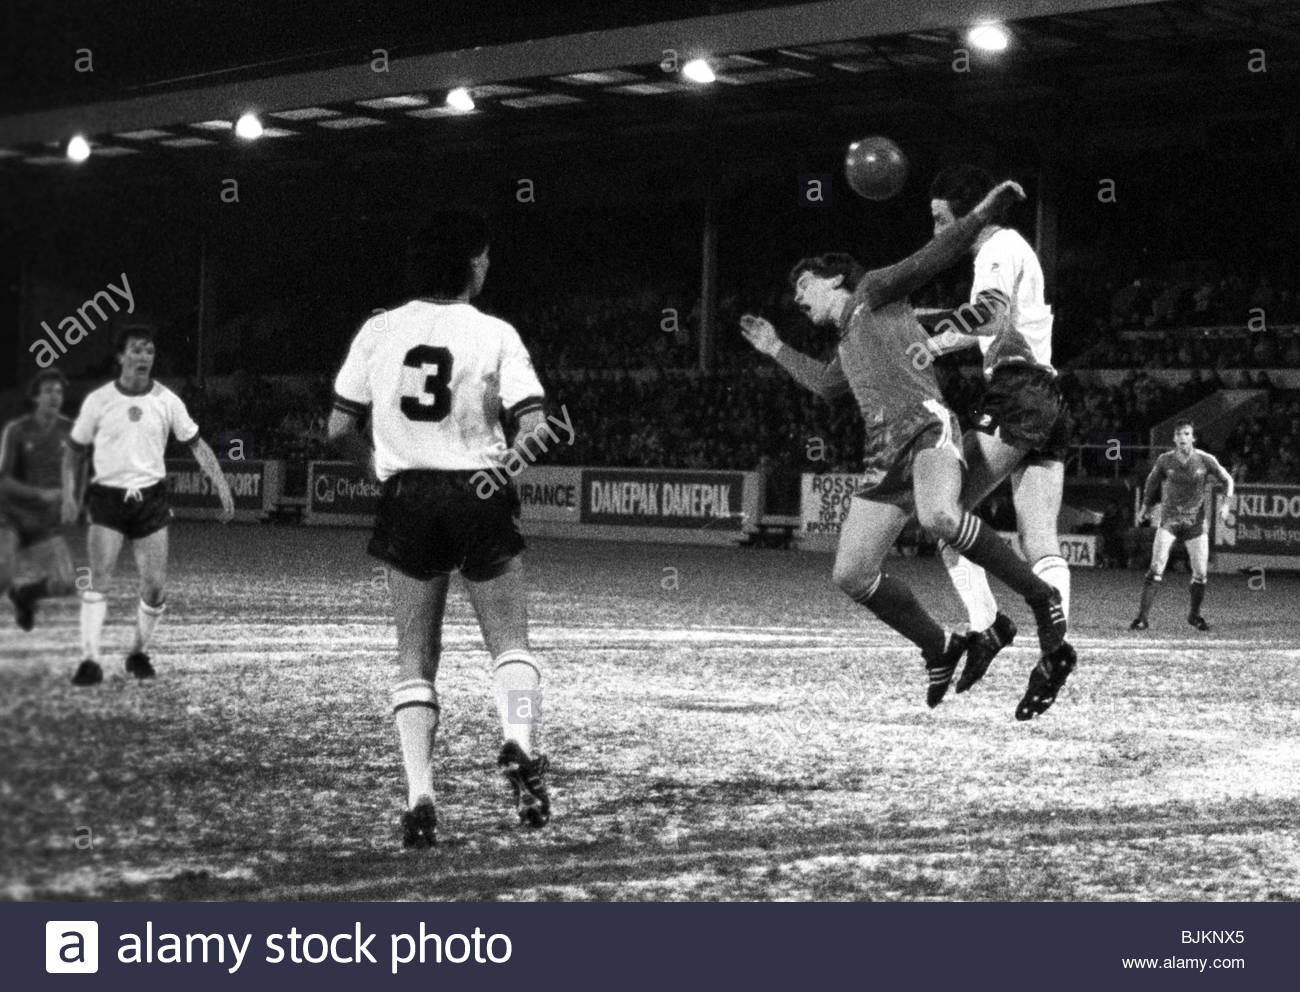 Pittodrie Black And White Stock Photos Images Alamy 02 Kaos Bola Distro 08 83 Premier Division Aberdeen V Motherwell 5 1